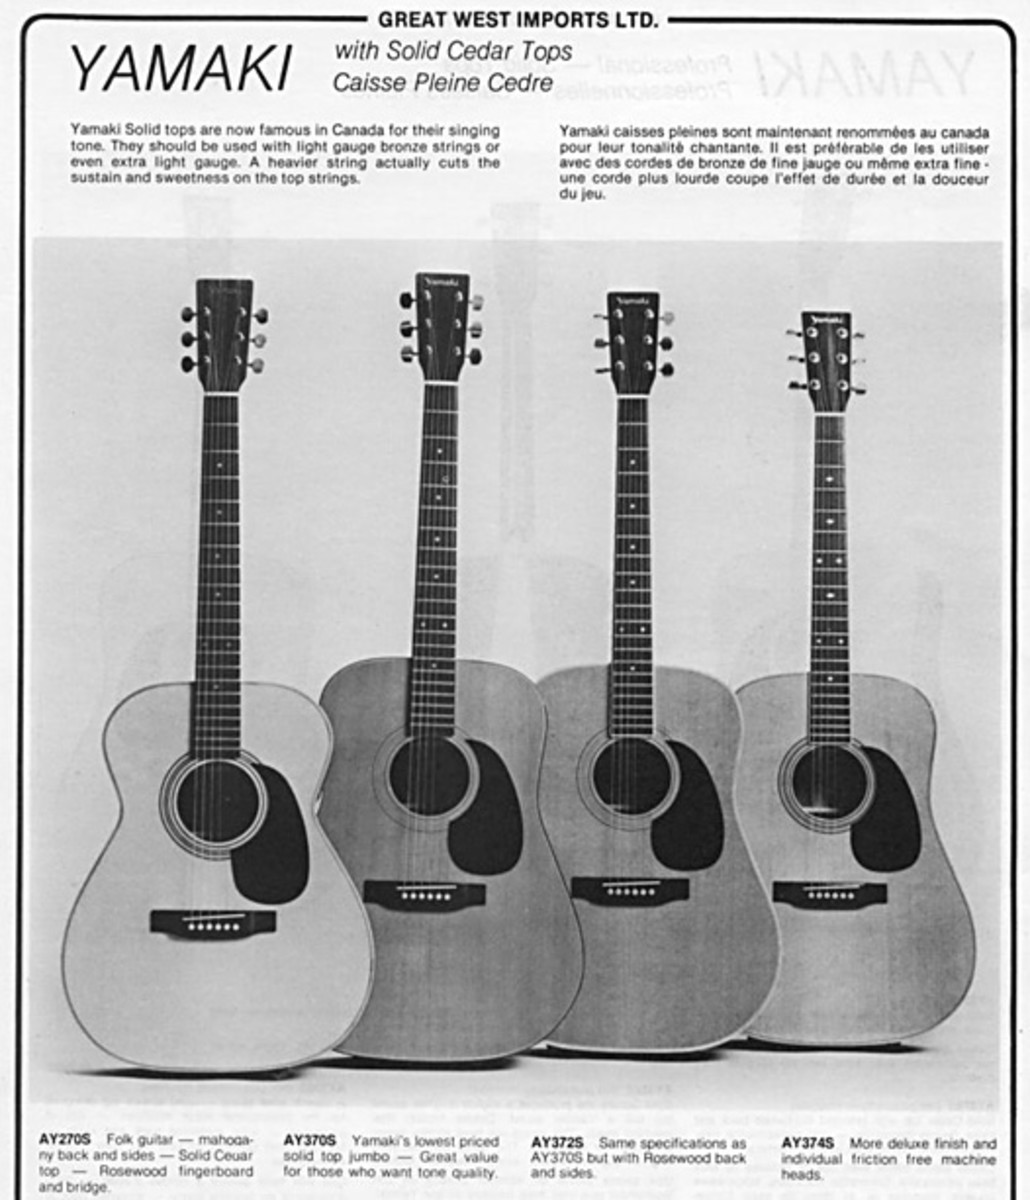 You may wish to dowload this image, and then blow it up to read it - further help towards identifying a Yamaki guitar's specifications